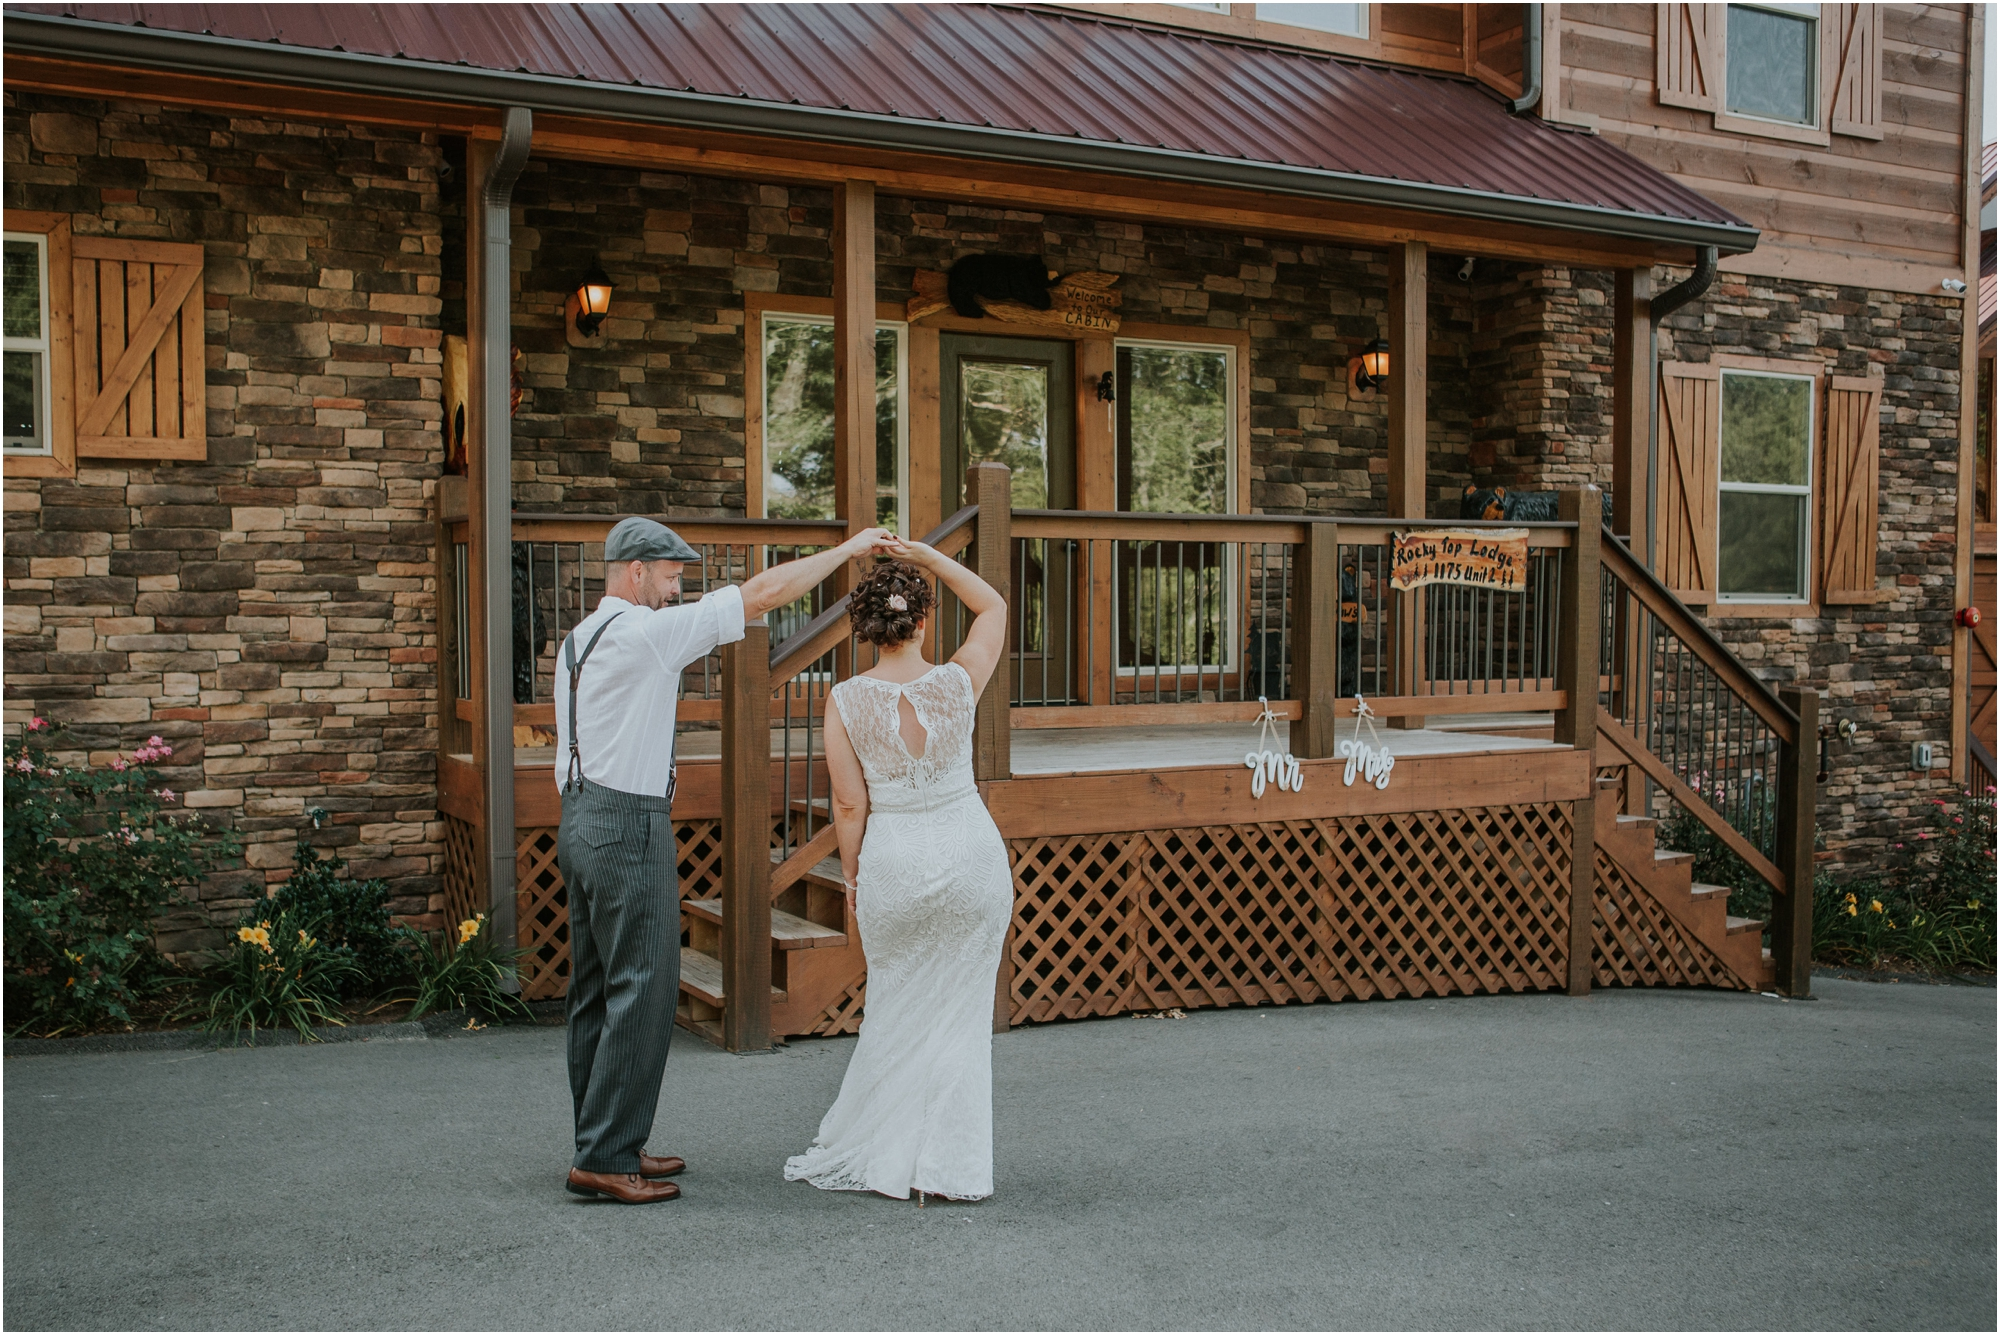 first-looks-wedding-planning-tips-timeline-groom-bride-katy-sergent-photography-northeast-tennessee-adventurous-wedding-elopement_0012.jpg